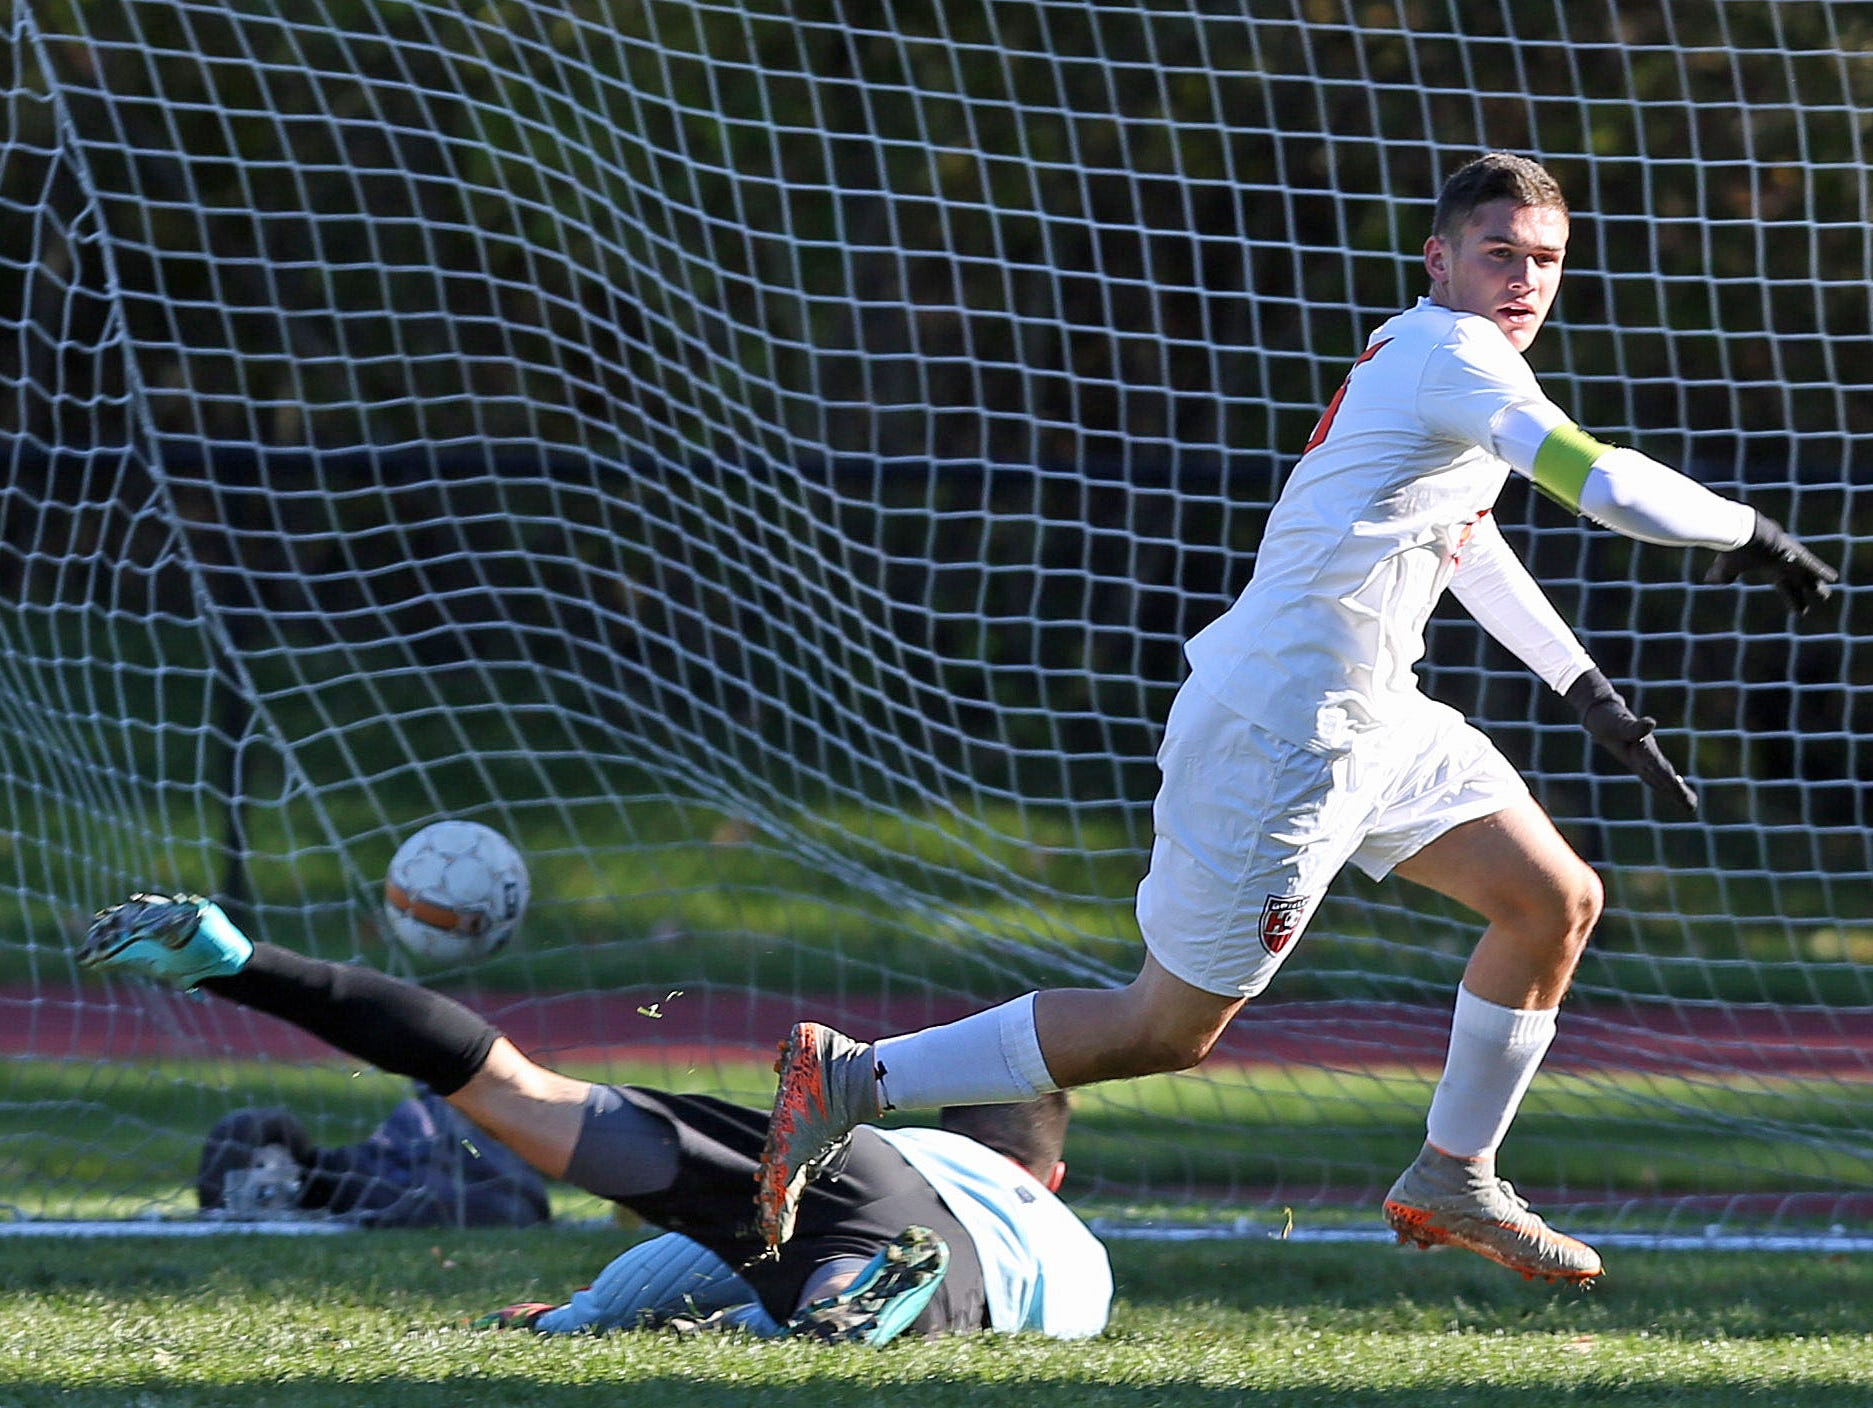 Greeley's Matt Neuberger (15) gets a shot pass North Rockland goal keeper Julio Rebolledo for his first of three goals in the first half during a boys soccer playoff game at Horace Greeley High School in Chappaqua Oct. 23, 2015.